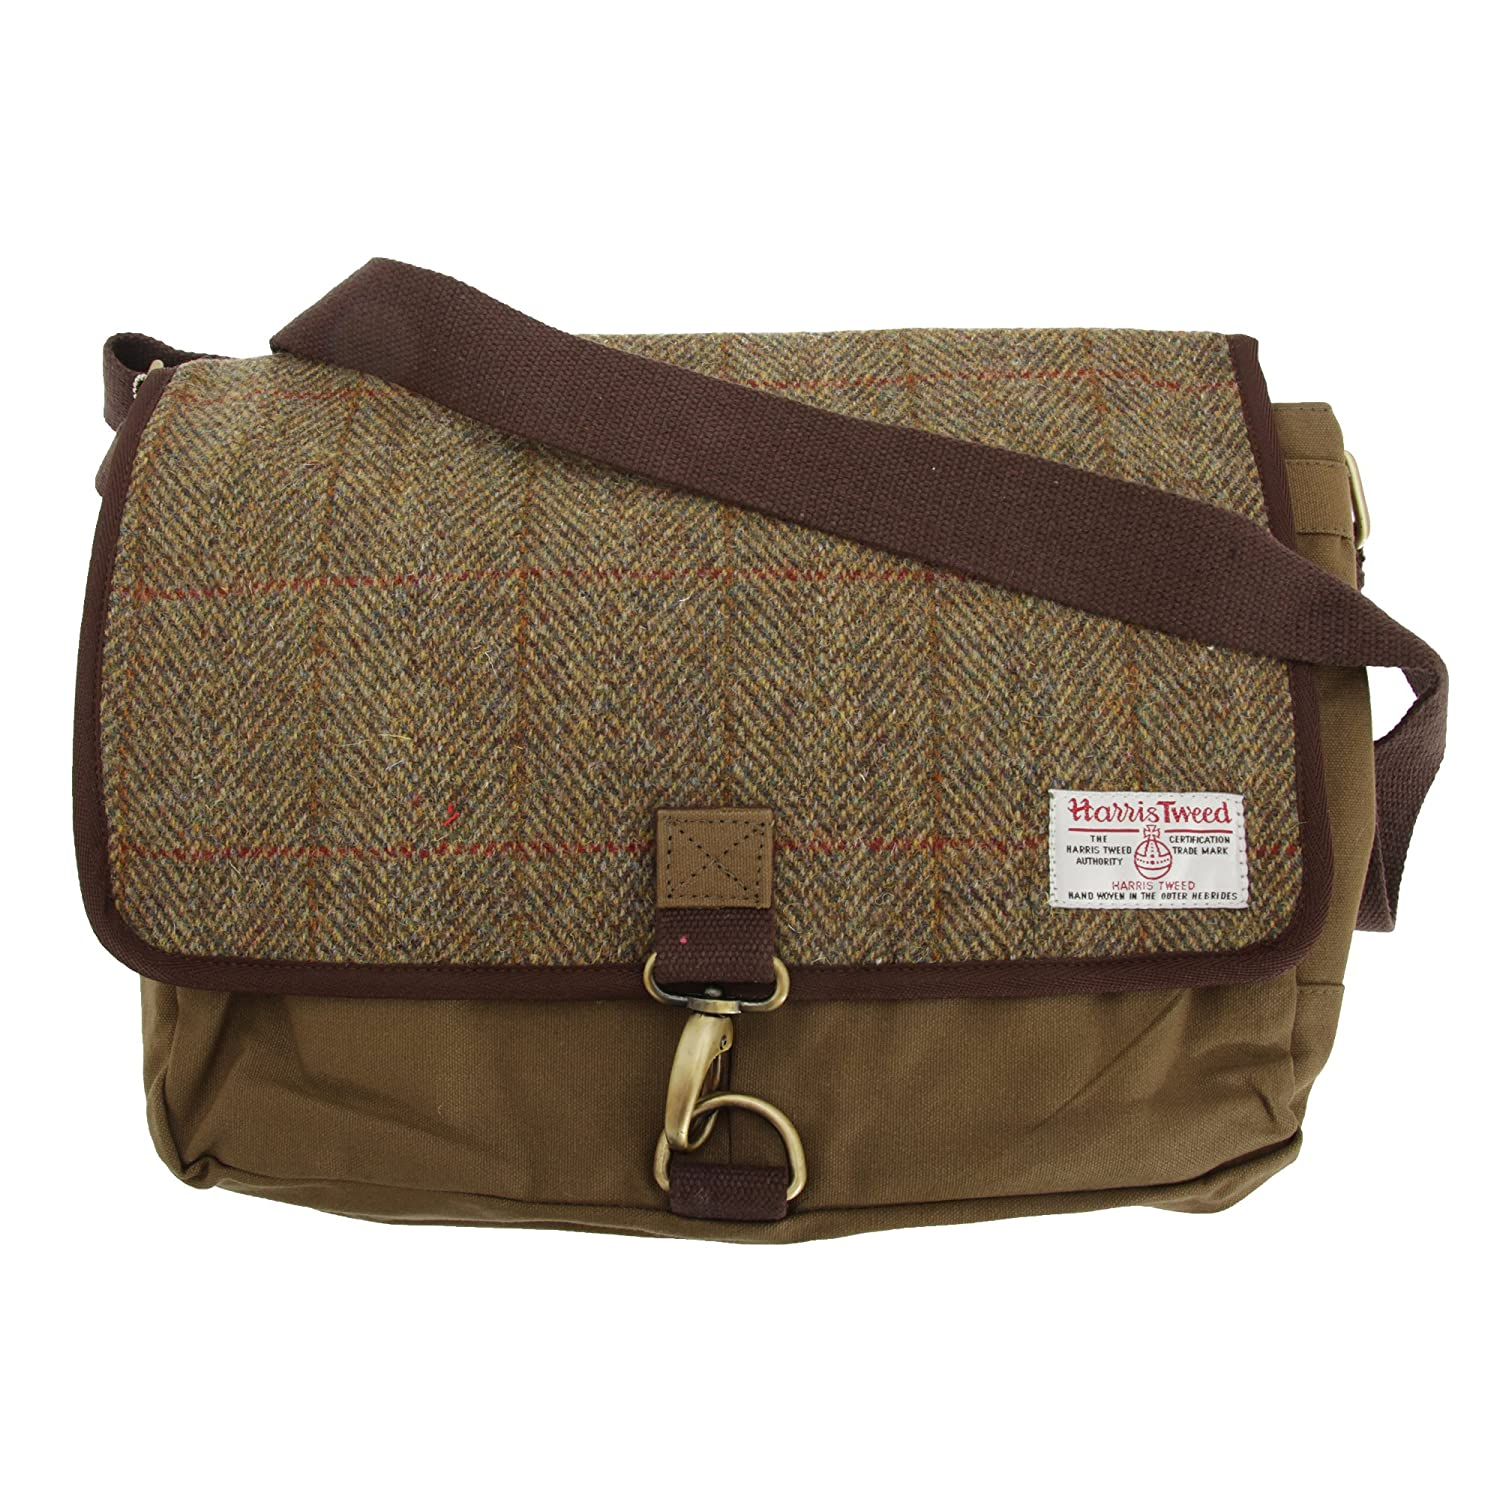 393bd665c4 Harris Tweed Mens Authentic Premium Shoulder Strap Despatch Bag (One Size)  (Khaki Green (Blue Stripe))  Amazon.co.uk  Clothing